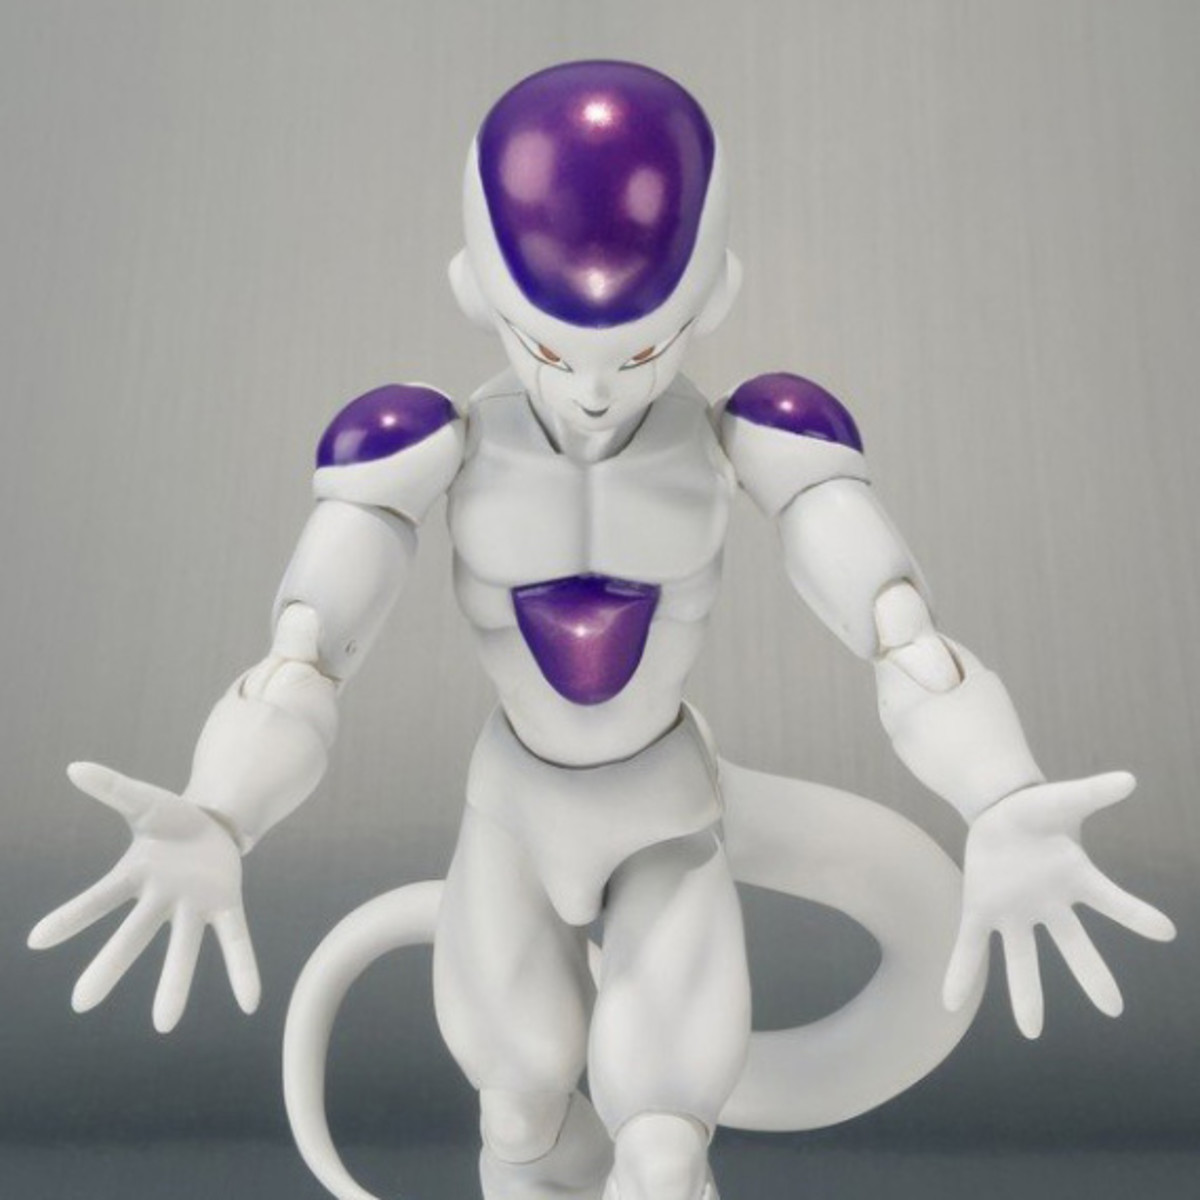 Dragon Ball Z: Frieza - S.H.Figuarts Action Figure | By Bandai Tamashii Nations - 0